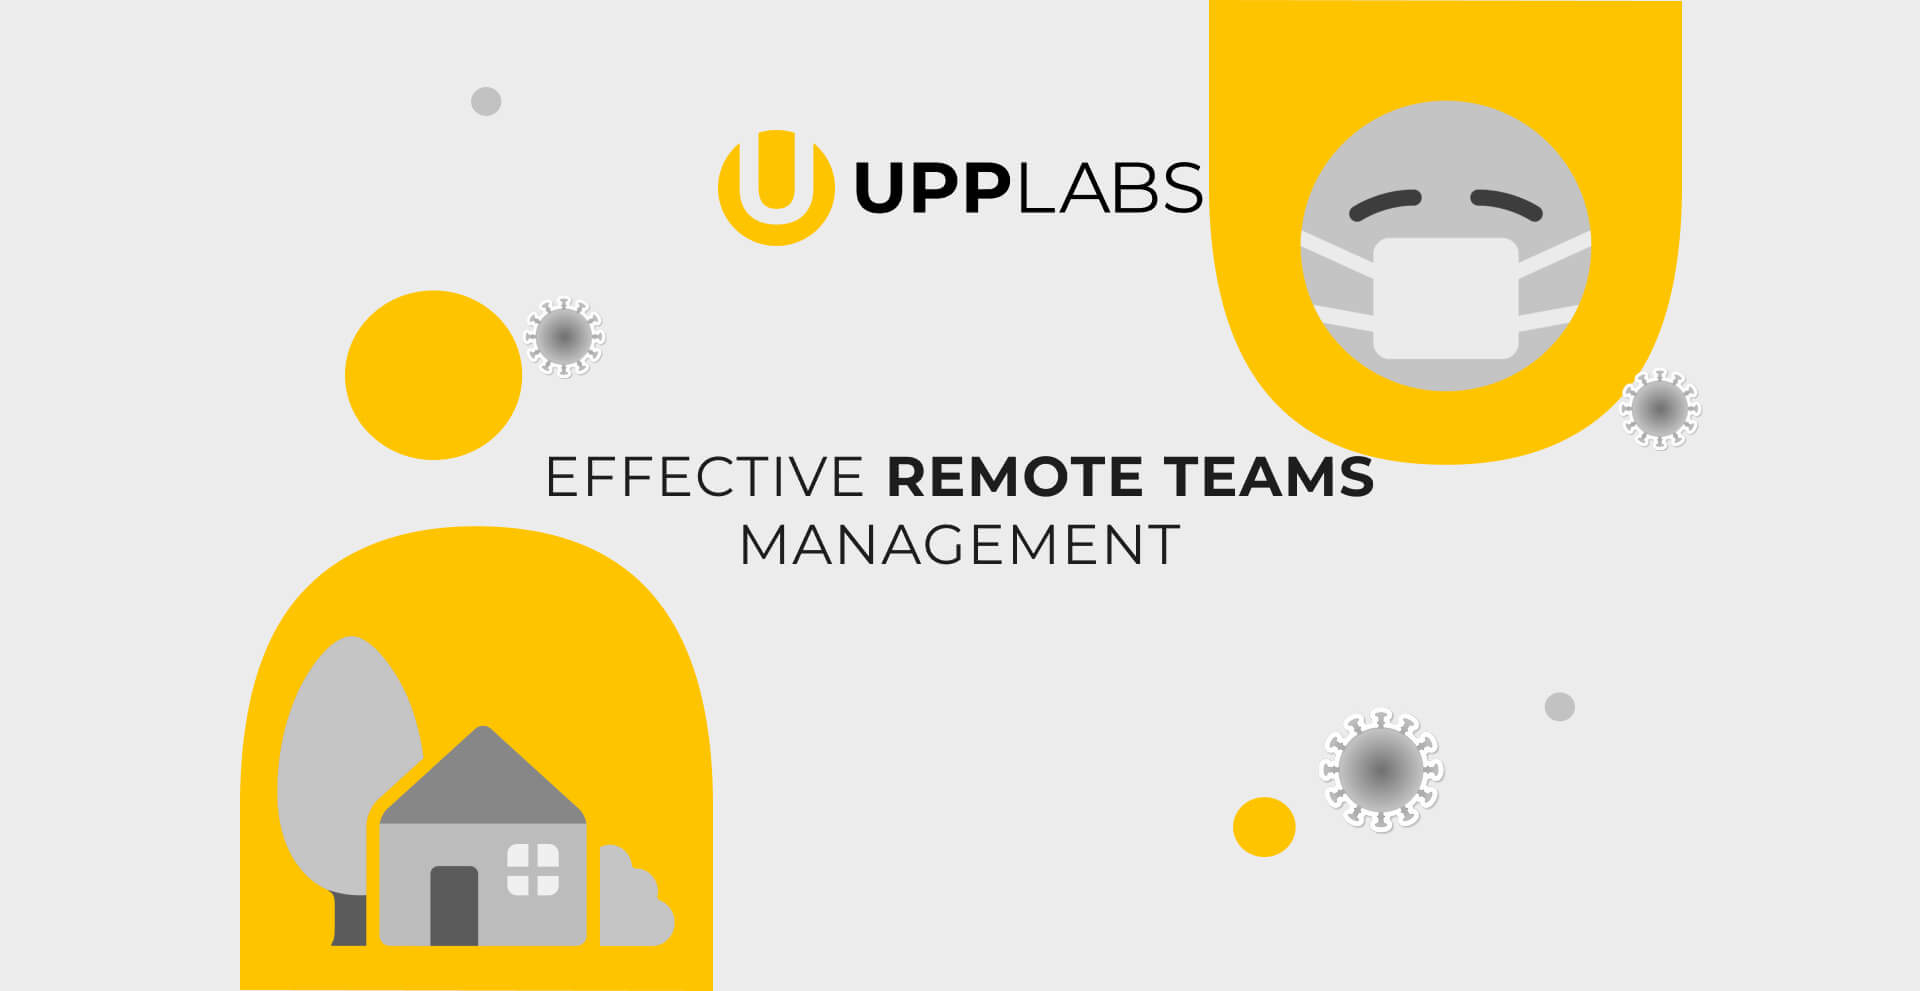 How to effectively manage remote teams?